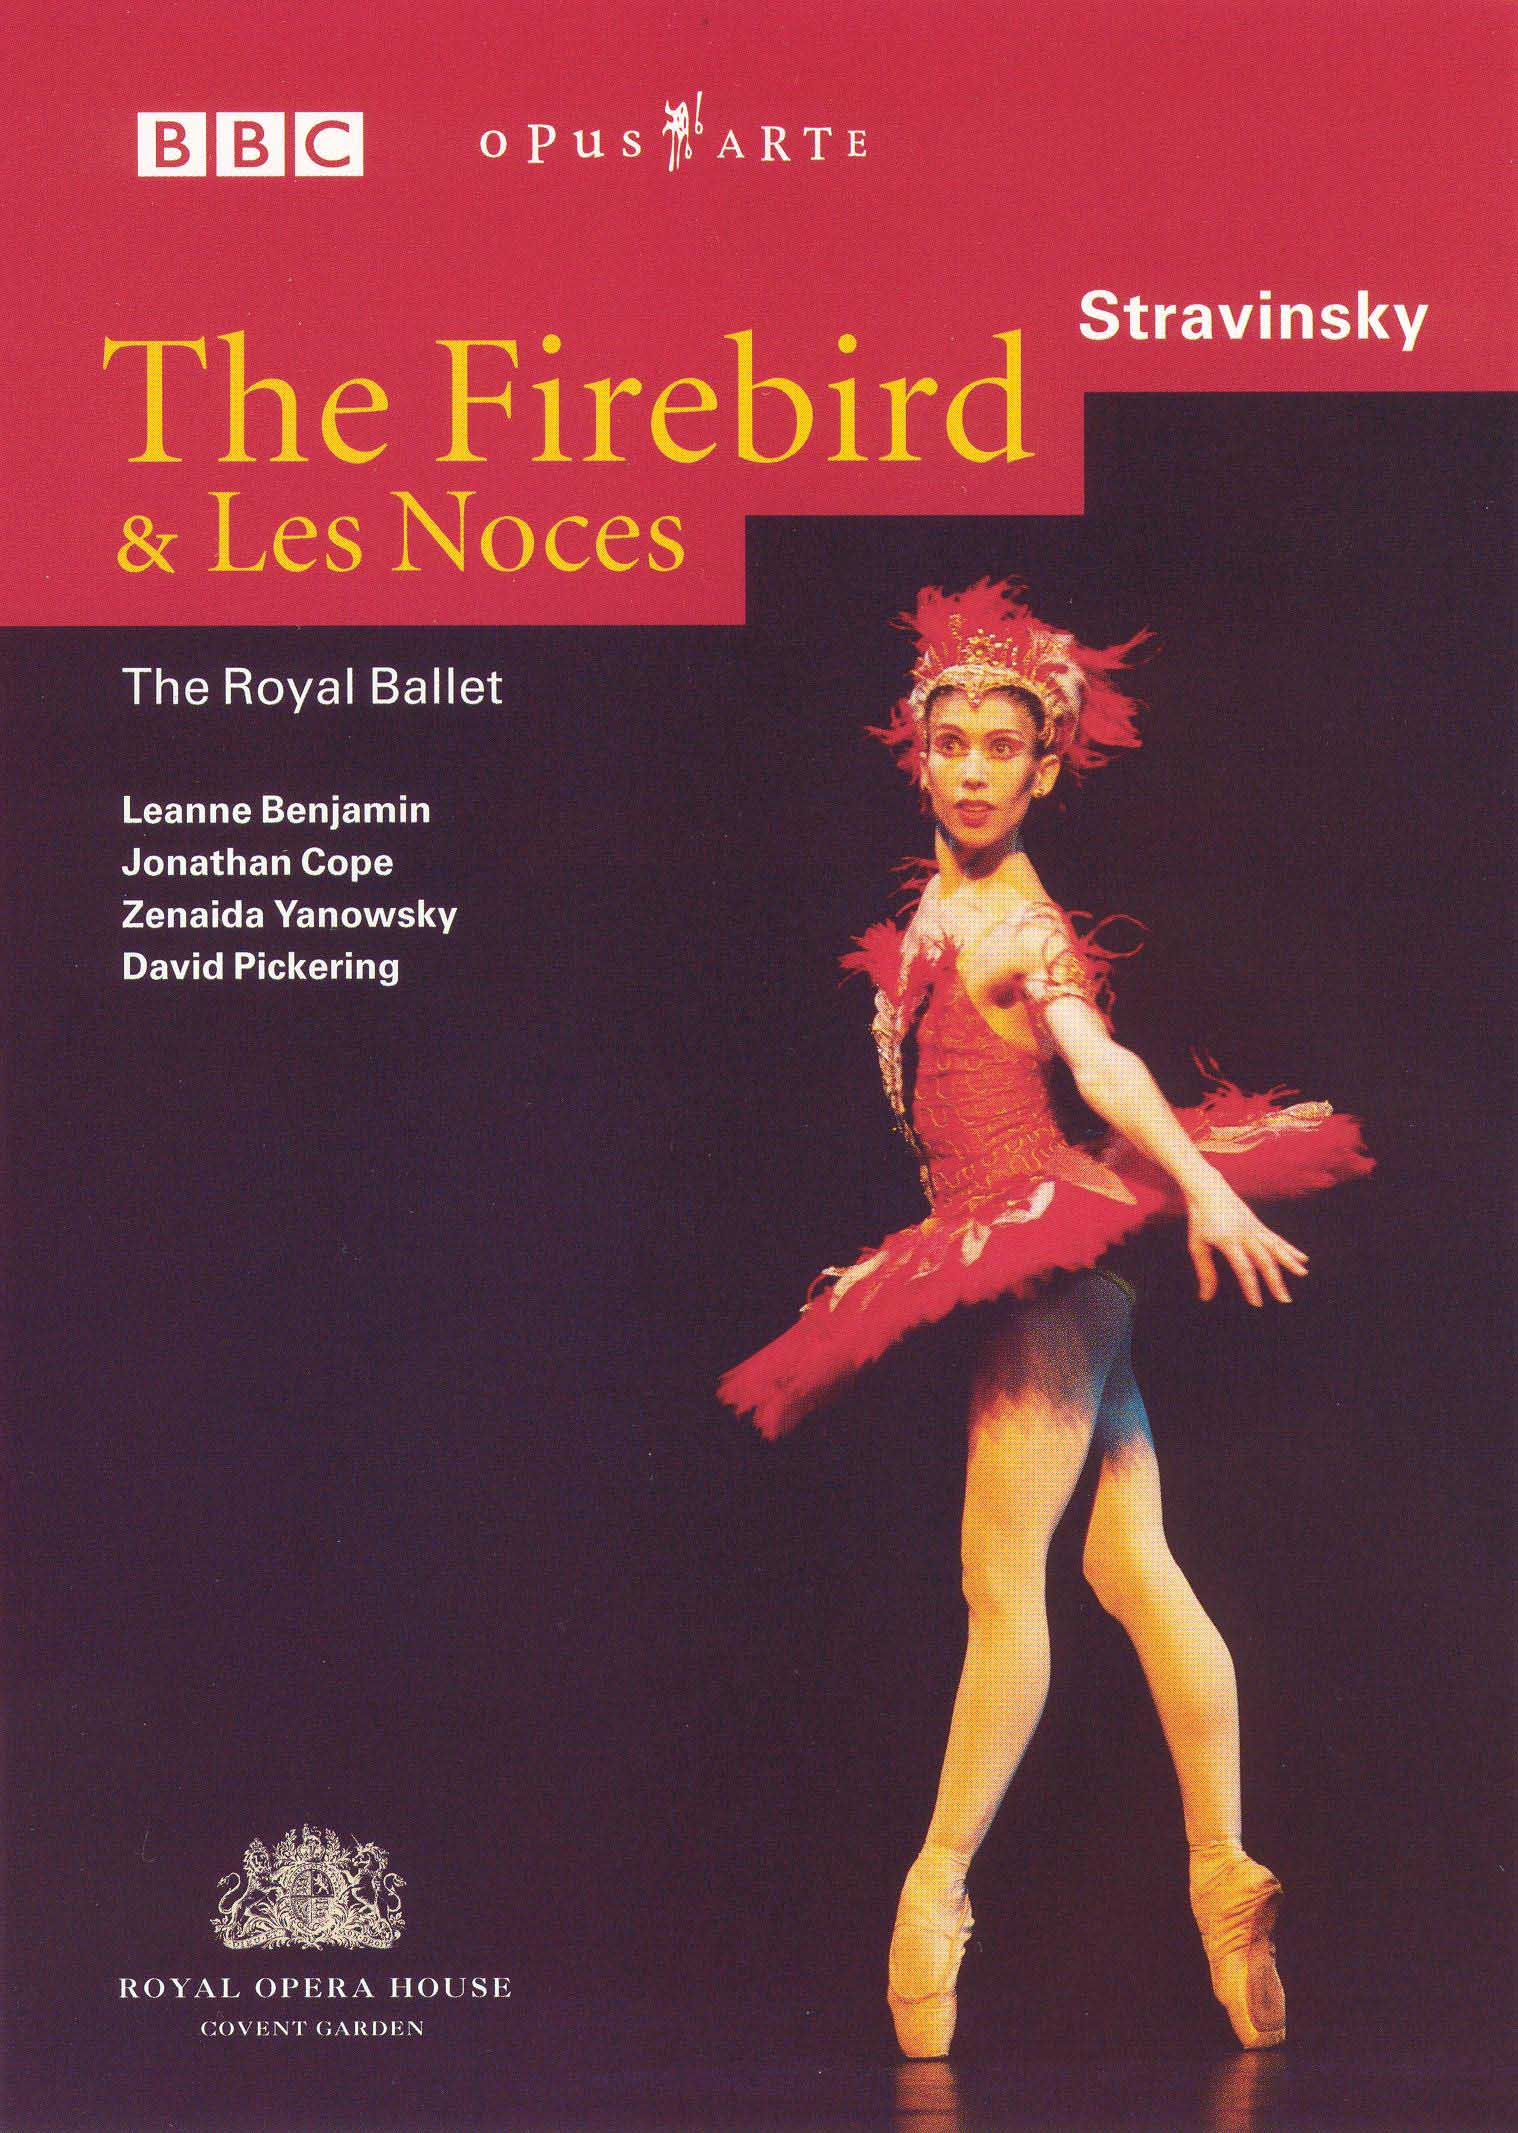 The Firebird & Les Noces